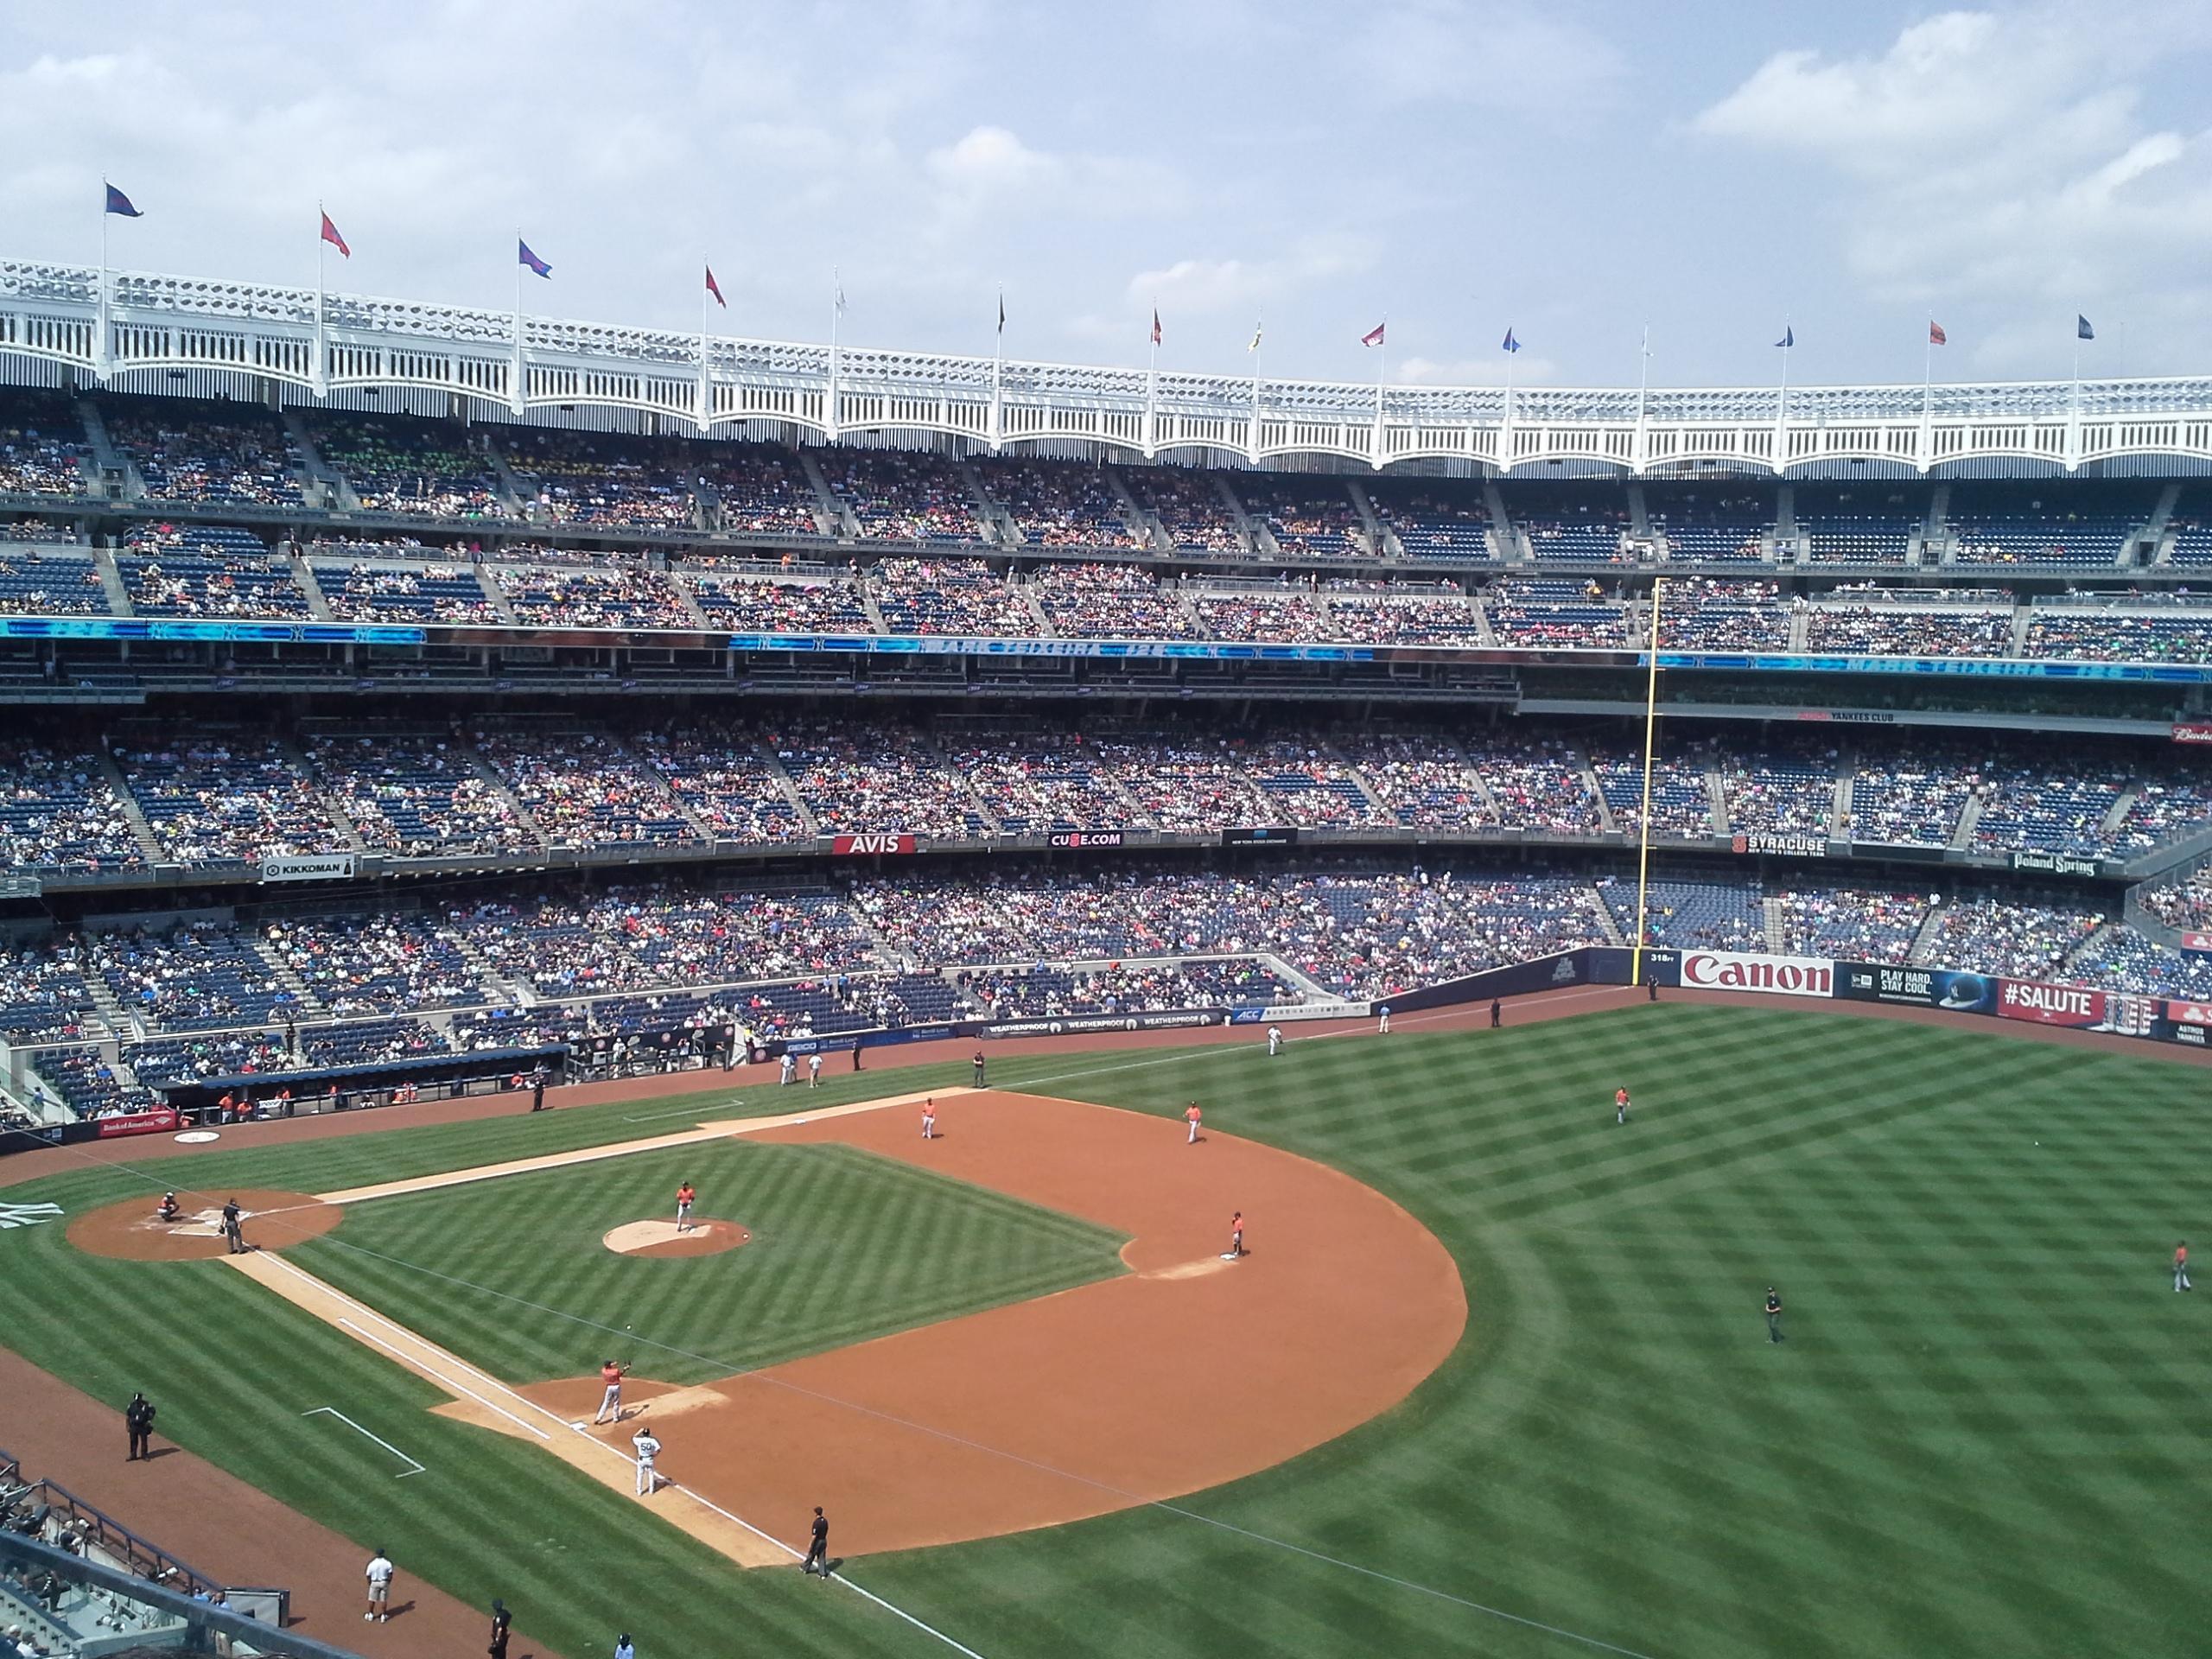 Yankees stadium seating chart rows 2019 2020 top car - Craigslist college station farm and garden ...